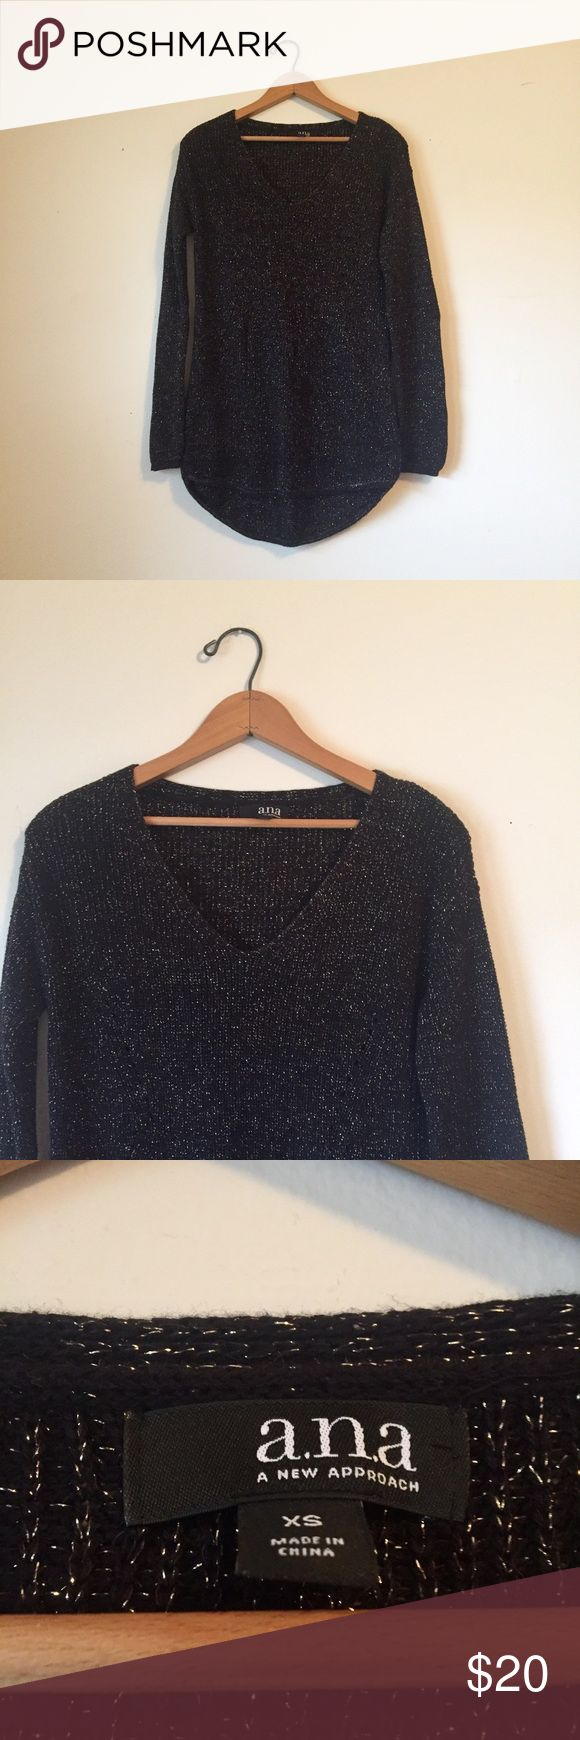 Black & silver hi low tunic sweater Beautiful a.n.a black and silver sparkle high low  tunic sweater. In excellent condition, worn once. Perfect for work or the weekend, can be dressed up or down. Pair with black leggings or  distressed skinny jeans, a long necklace and leather booties. a.n.a Sweaters V-Necks